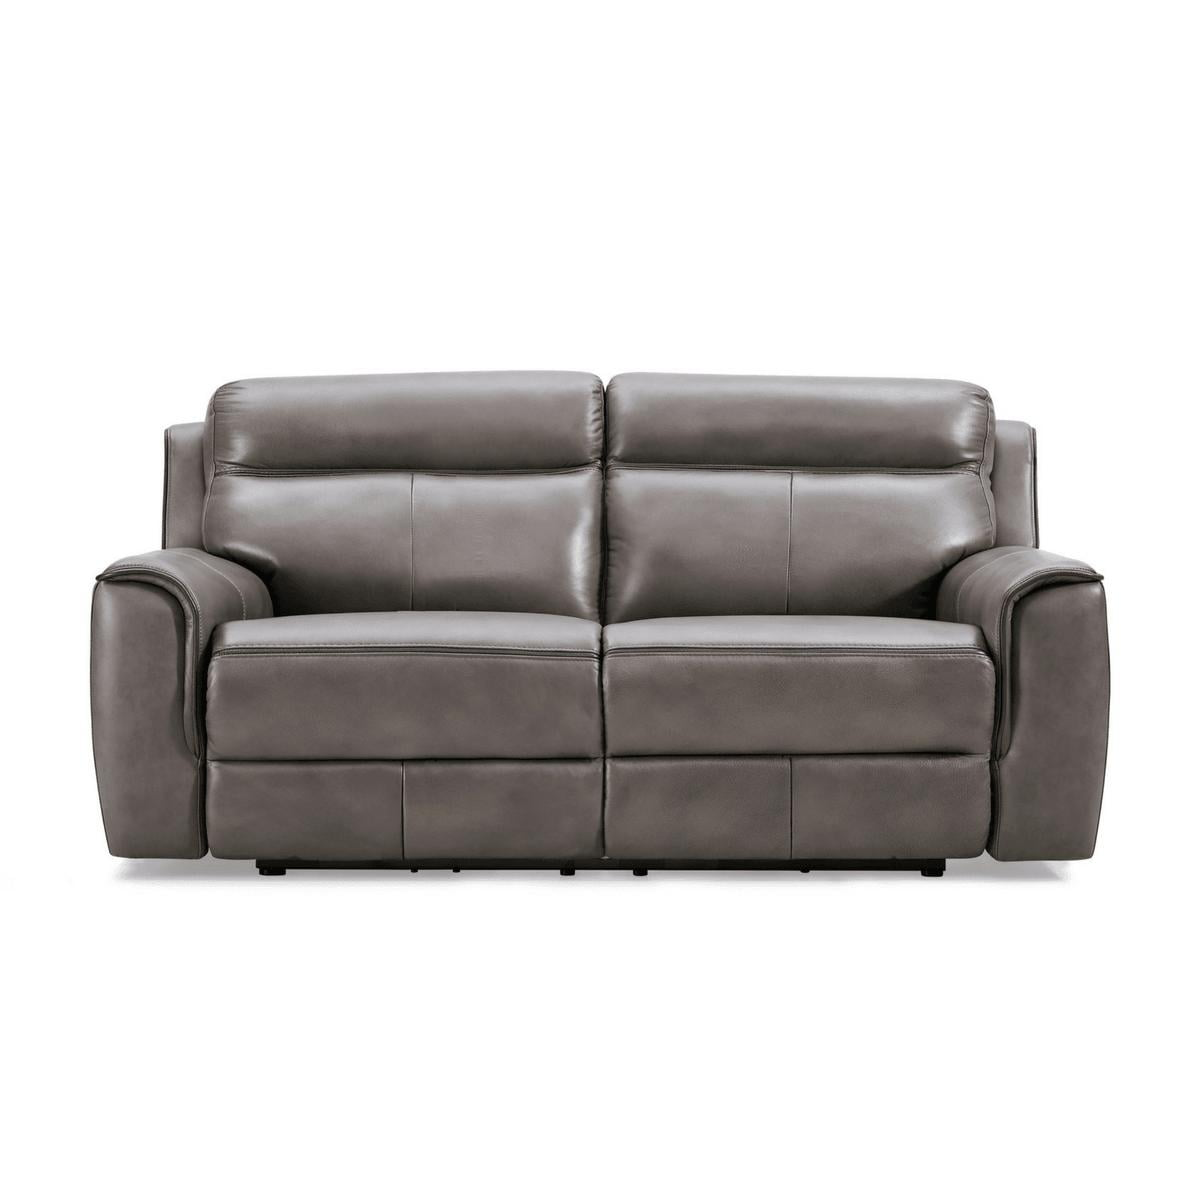 Nathaniel 2 Seater - Recliner